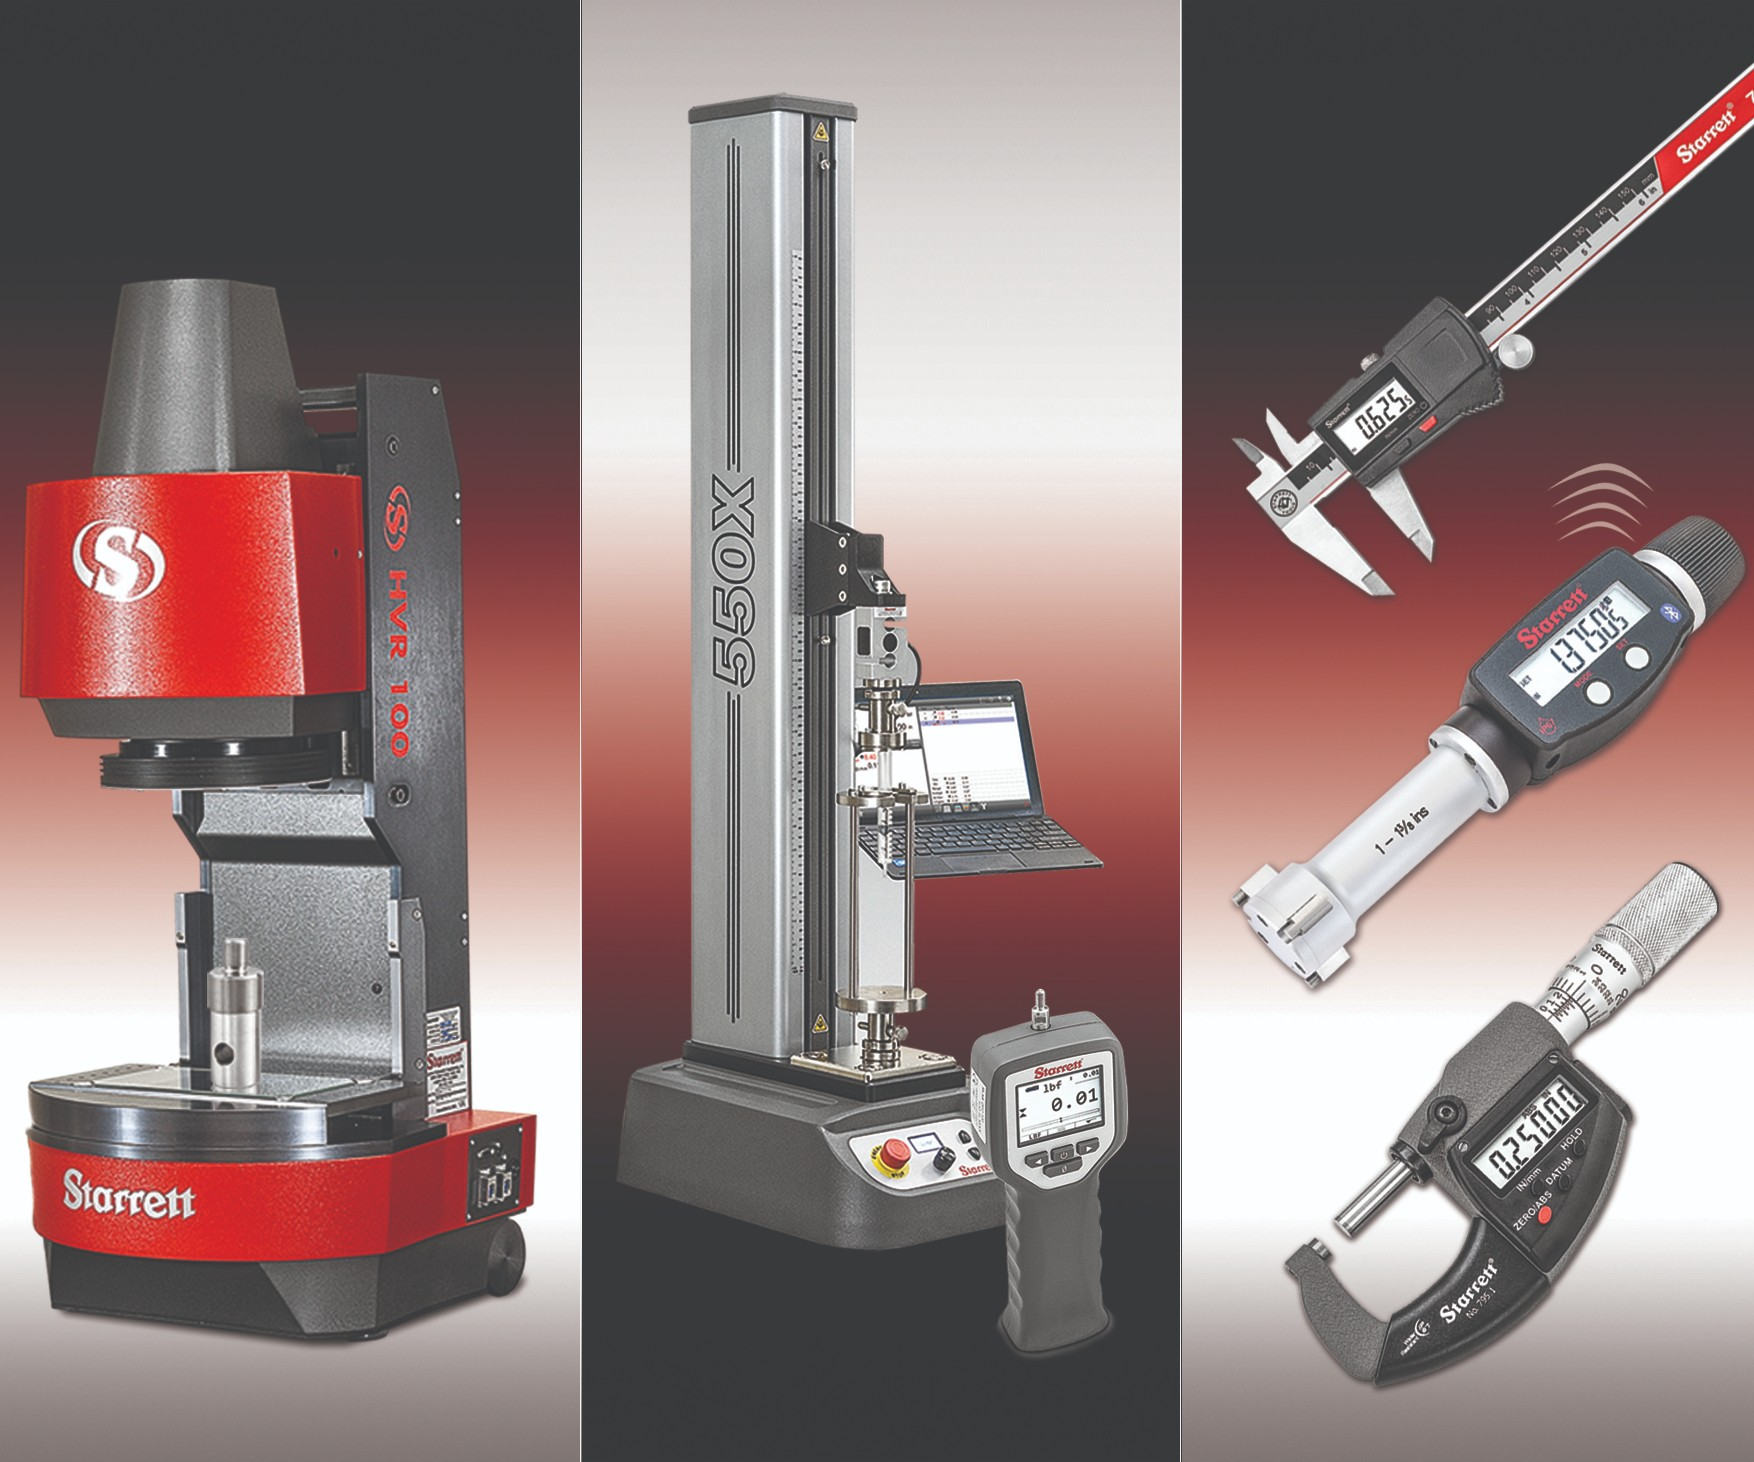 Starrett metrology tools